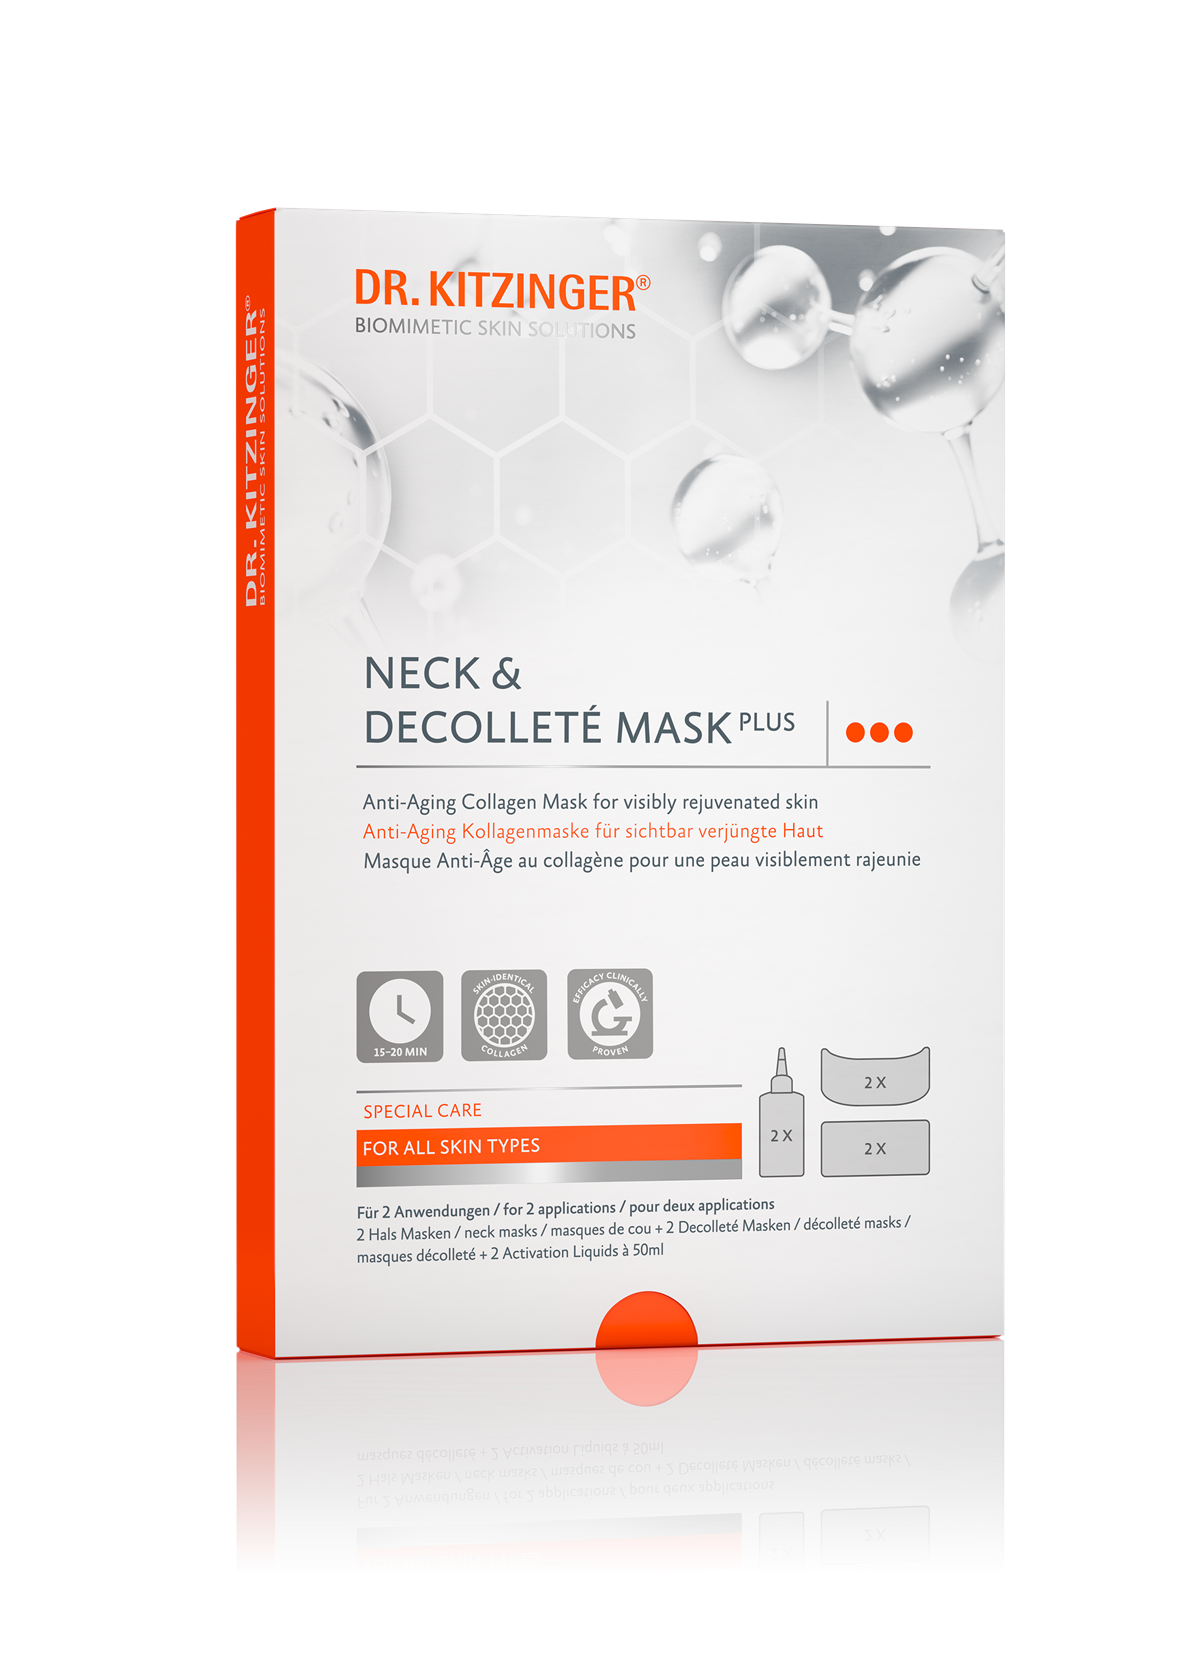 NECK & DECOLLETÉ MASK PLUS